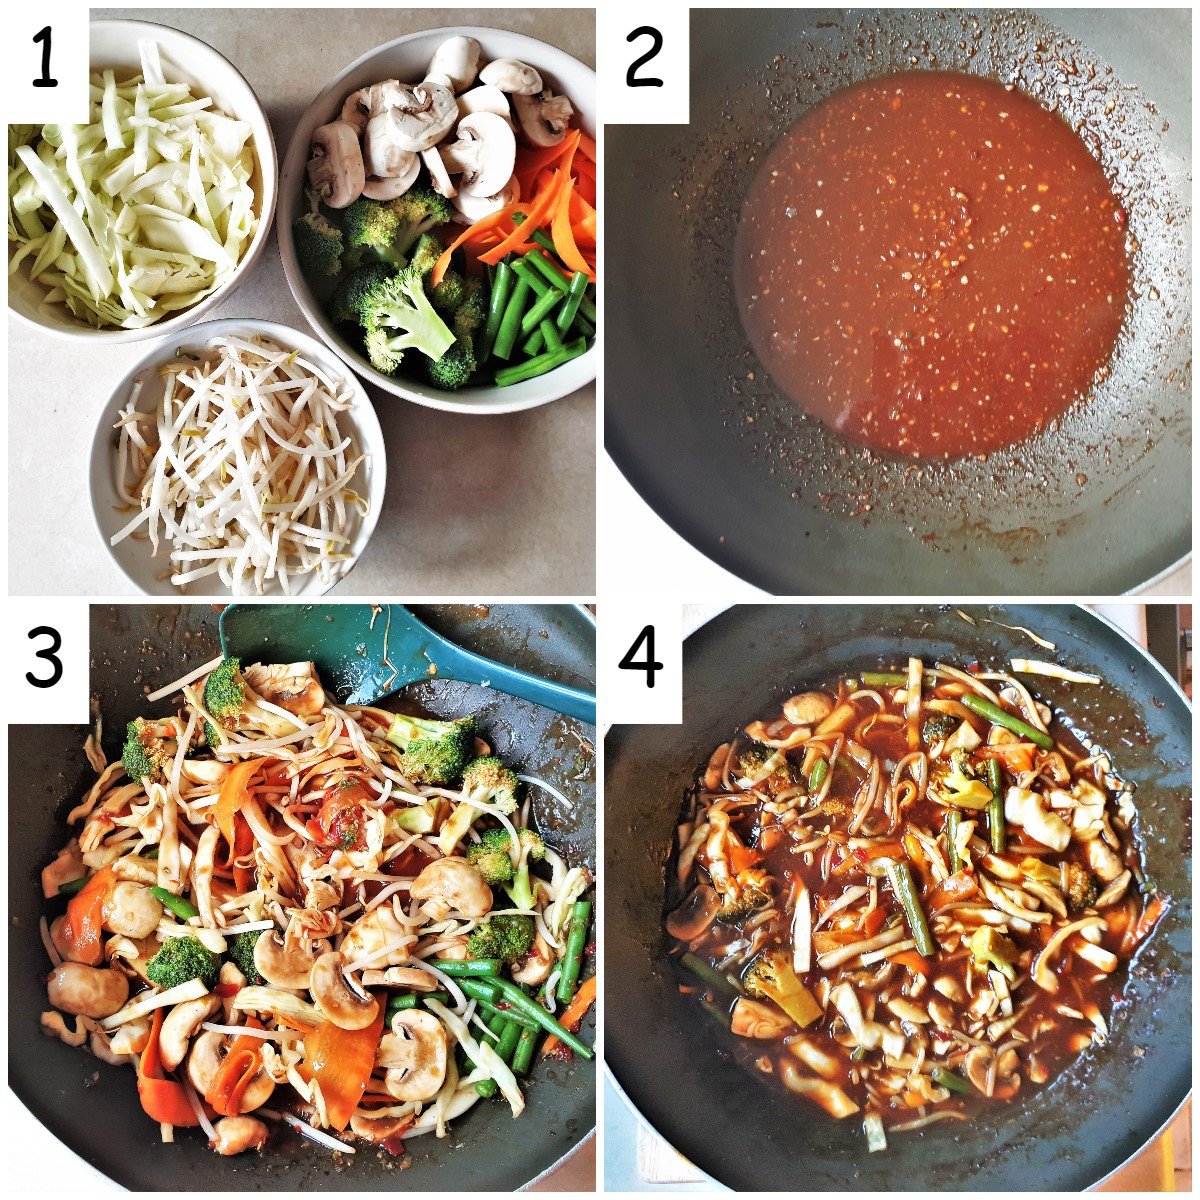 A collage of 4 images showing the steps for cooking the vegetables in the szechuan sauce.